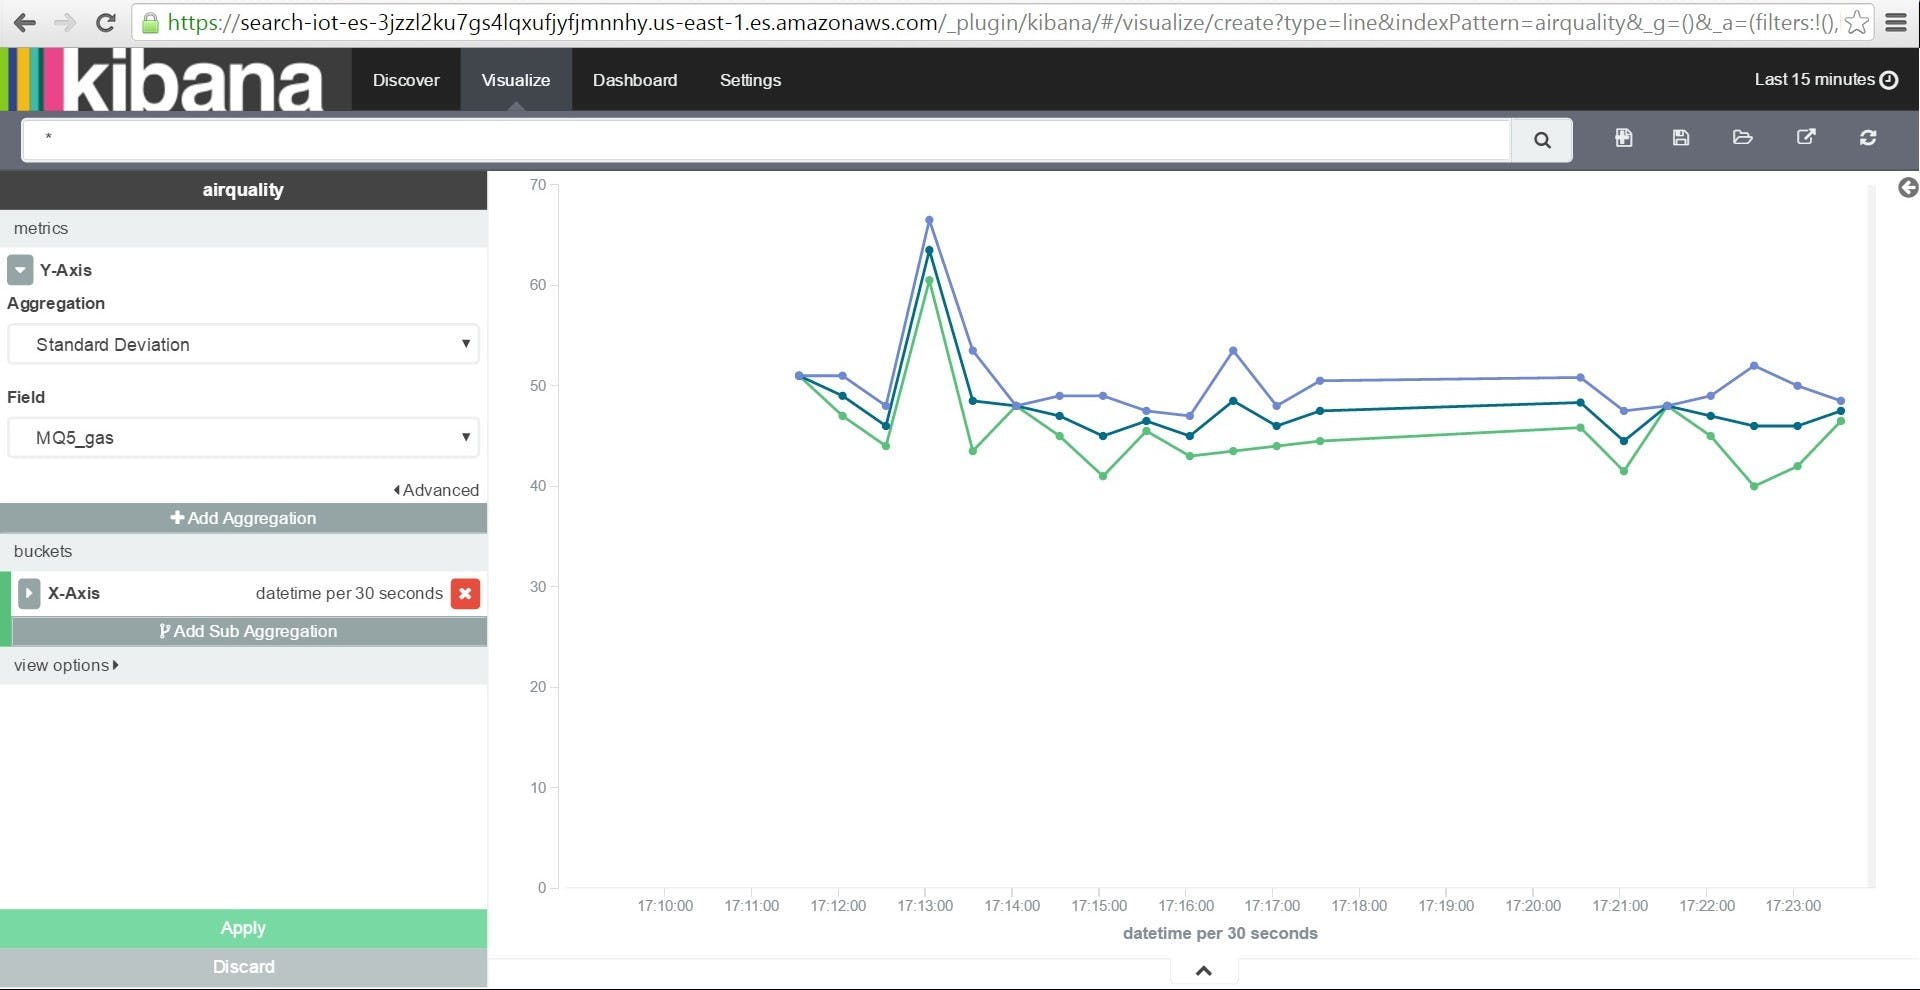 Kibana Visualizes our Data